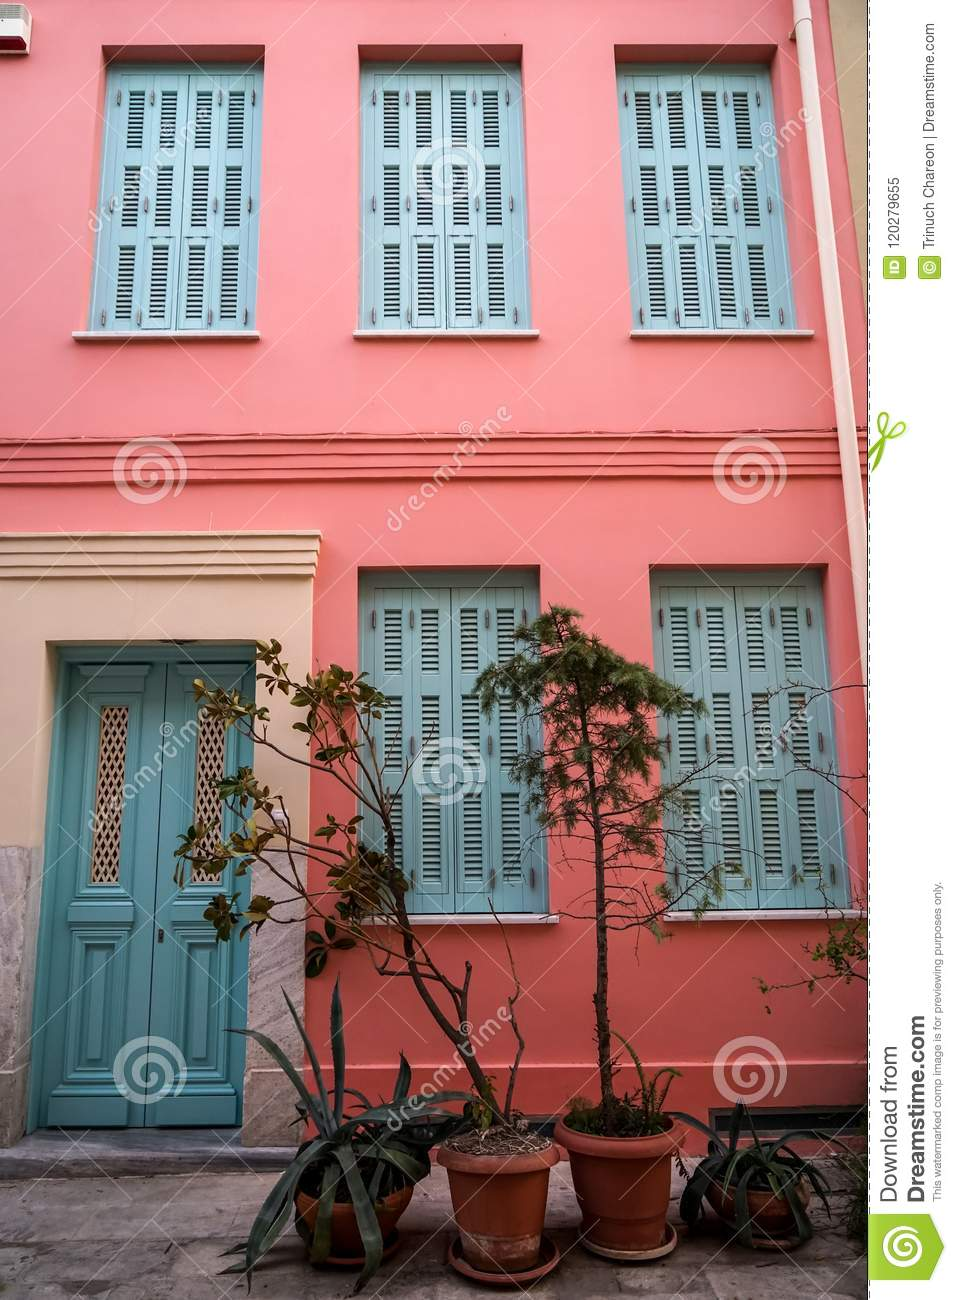 Scene Of Beautiful Urban Building Facade Background In Pastel Pink Plaster Paint Wall Light Blue Entry Door And Window Shutter Stock Image Image Of Pastel Building 120279655